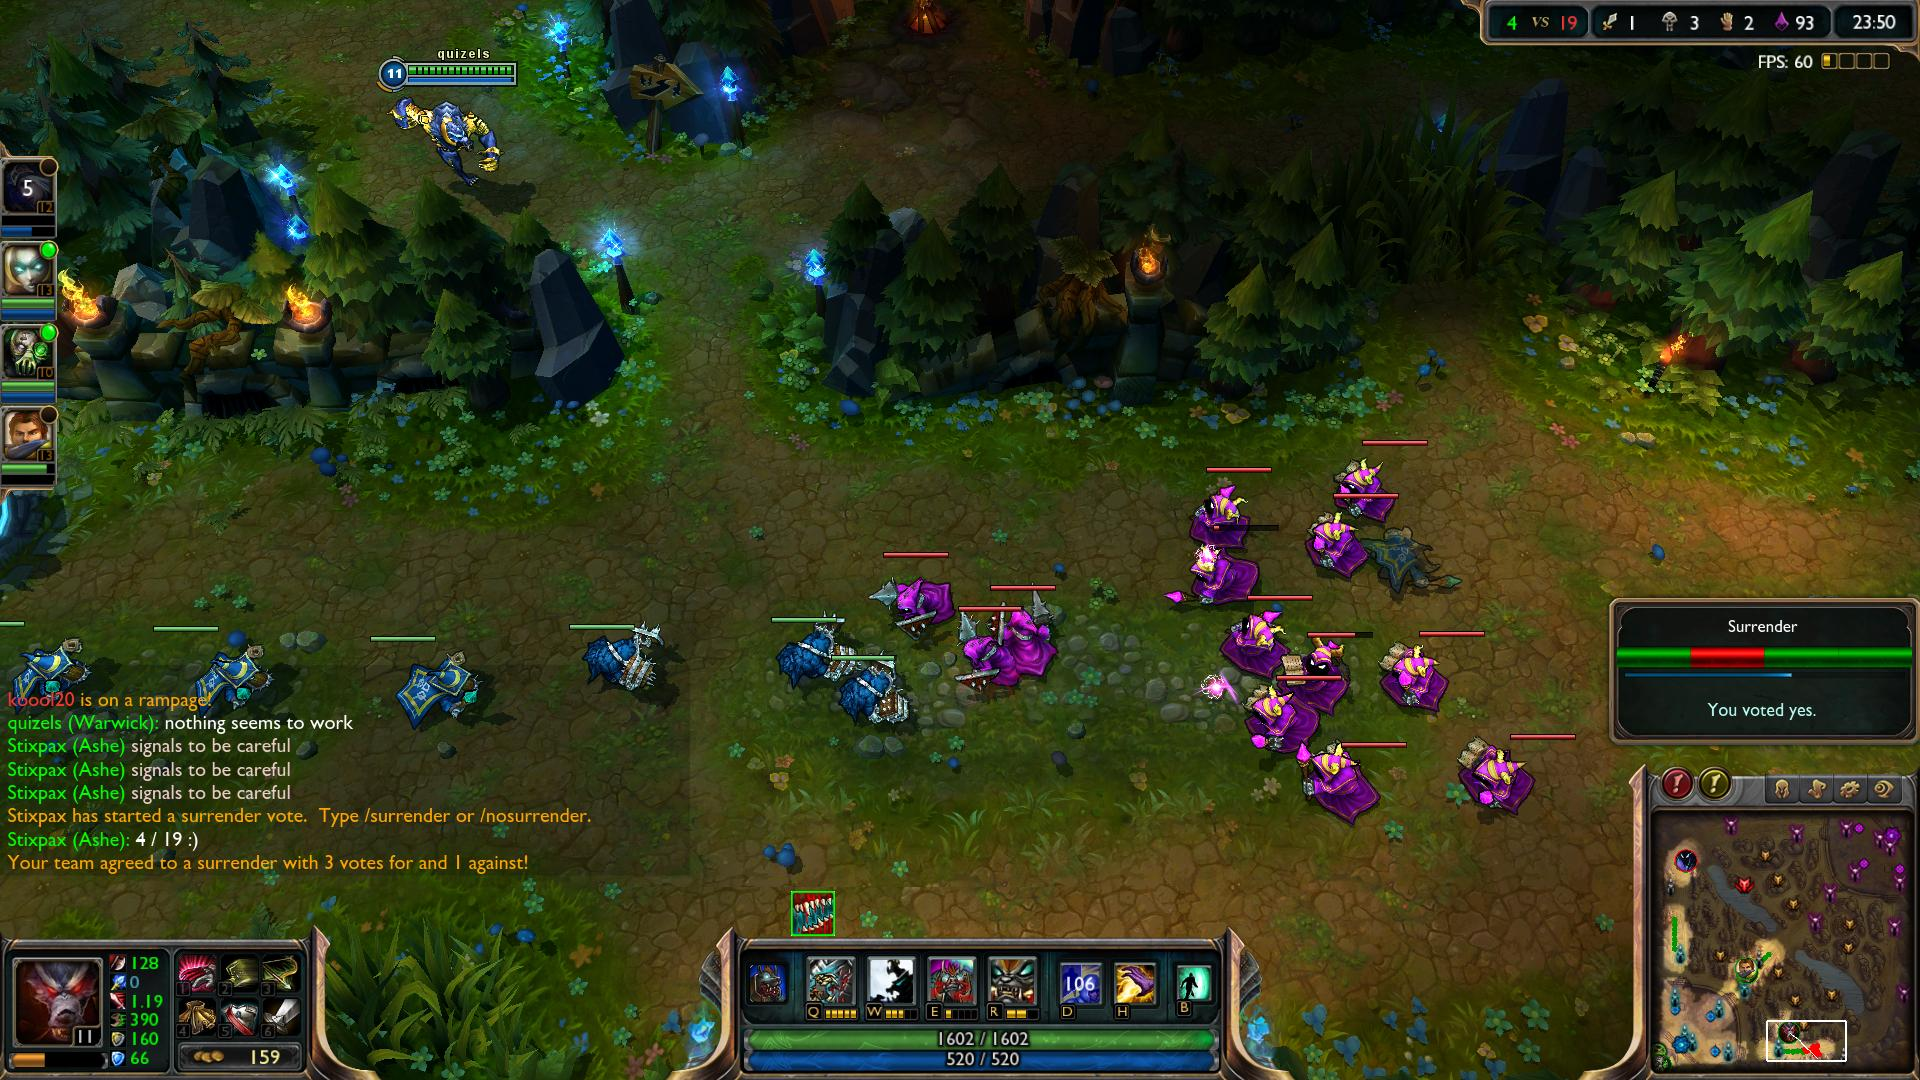 Surrender League of Legends lol screenshot